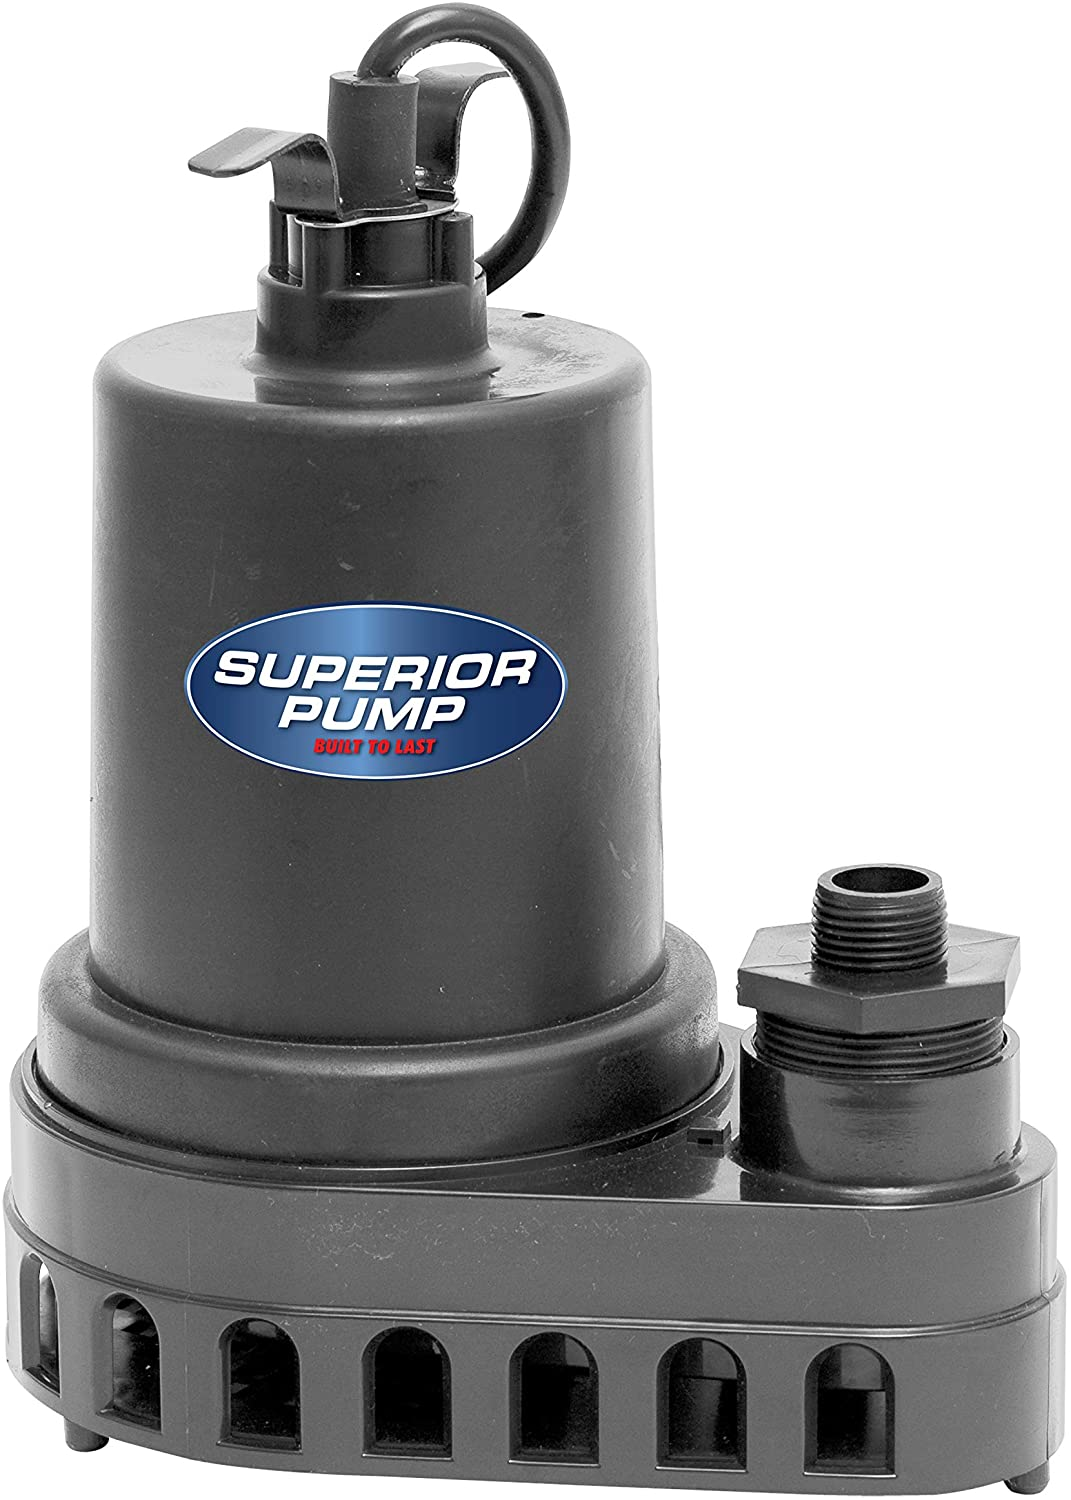 Superior Pump 91570 1/2 HP Thermoplastic Submersible Utility Pump with 10-Foot Cord